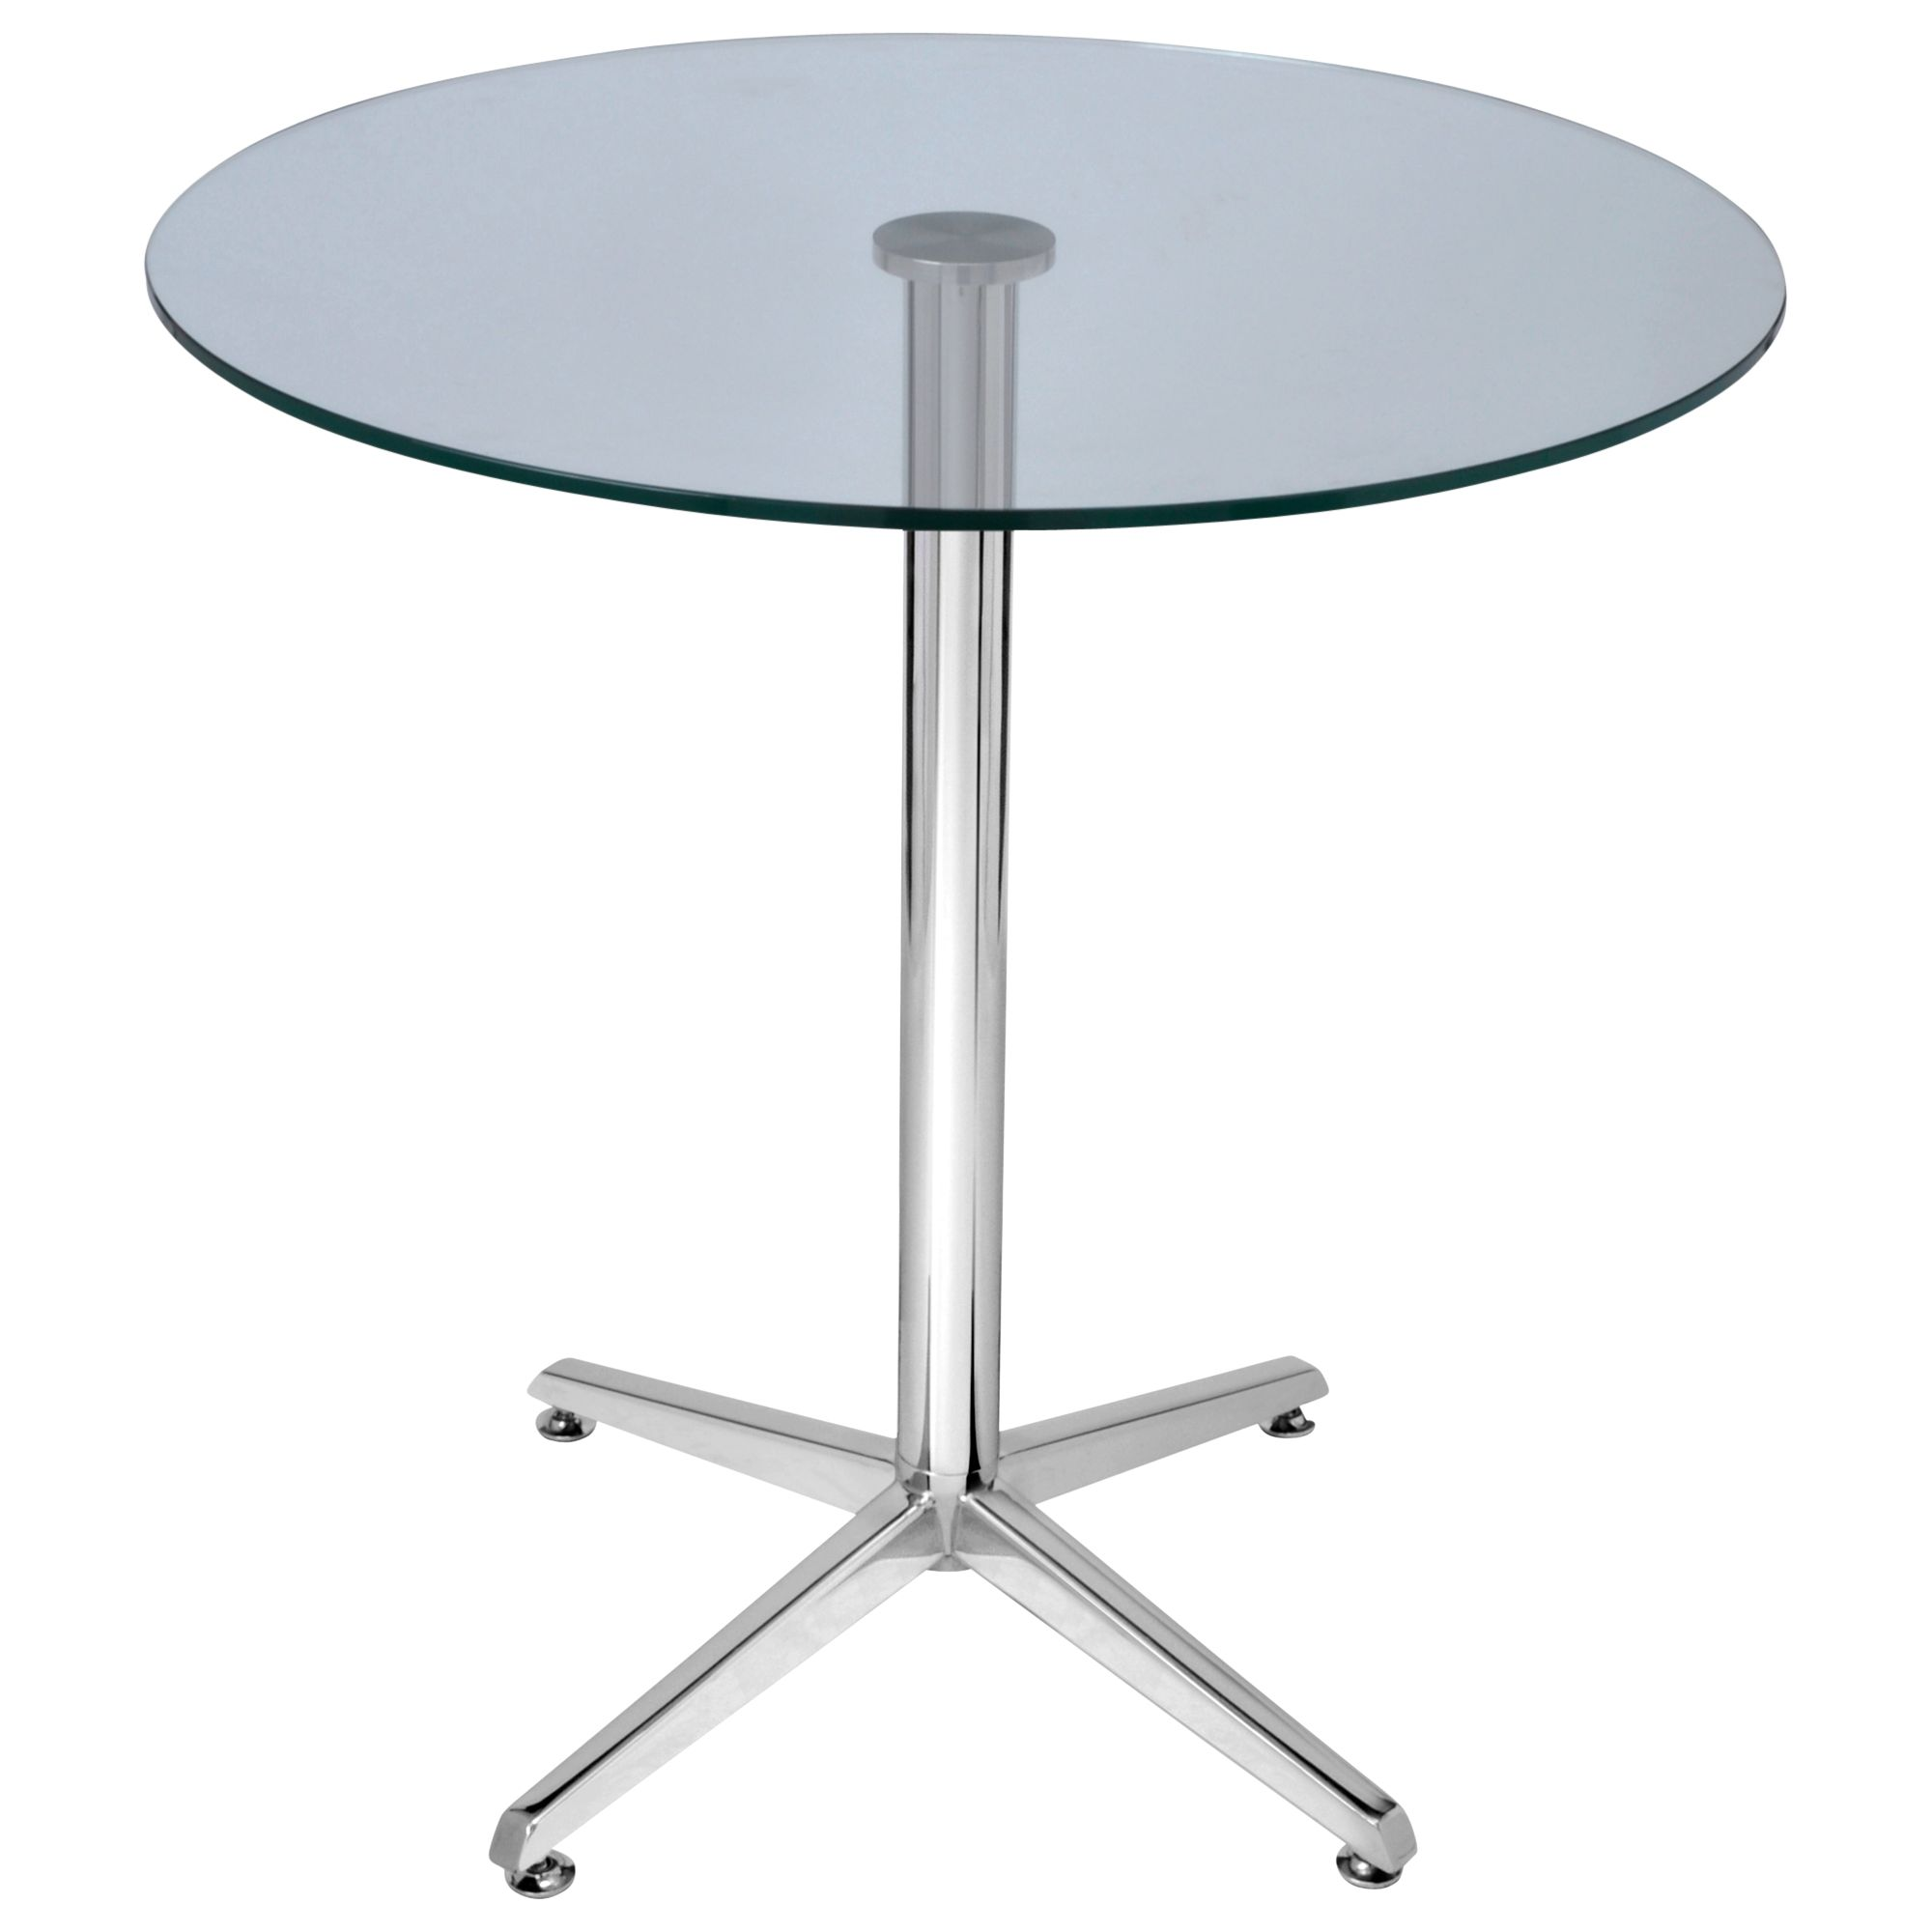 john lewis glass tables : 231289514 from www.comparestoreprices.co.uk size 1600 x 1600 jpeg 92kB